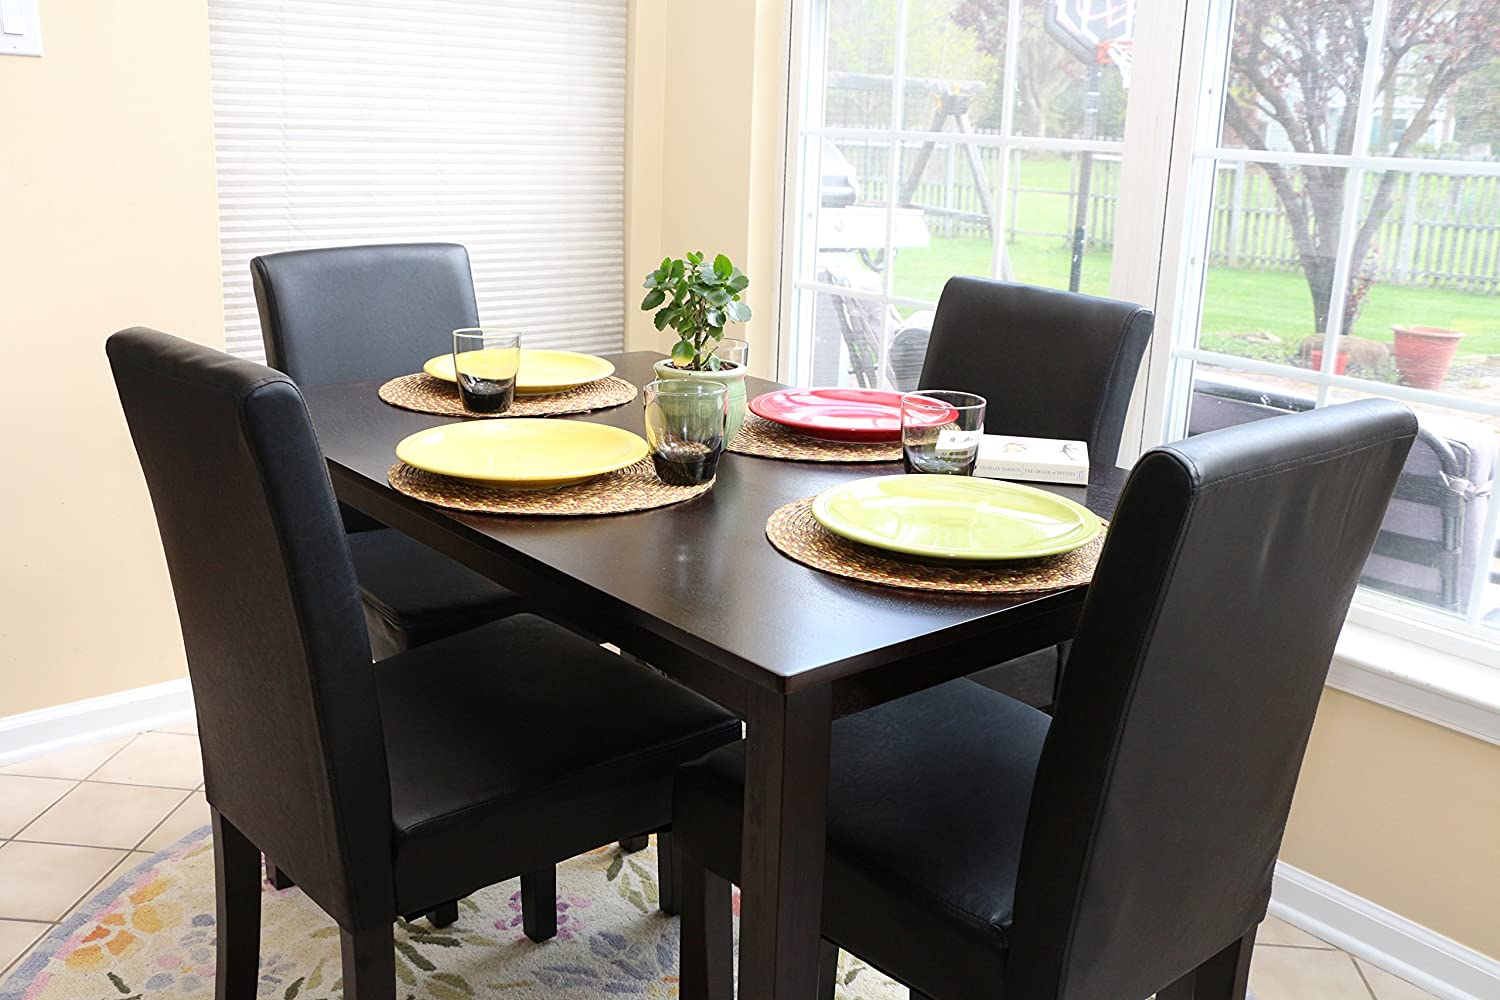 Amazon.com - 5 PC Black Leather 4 Person Table and Chairs Brown ...